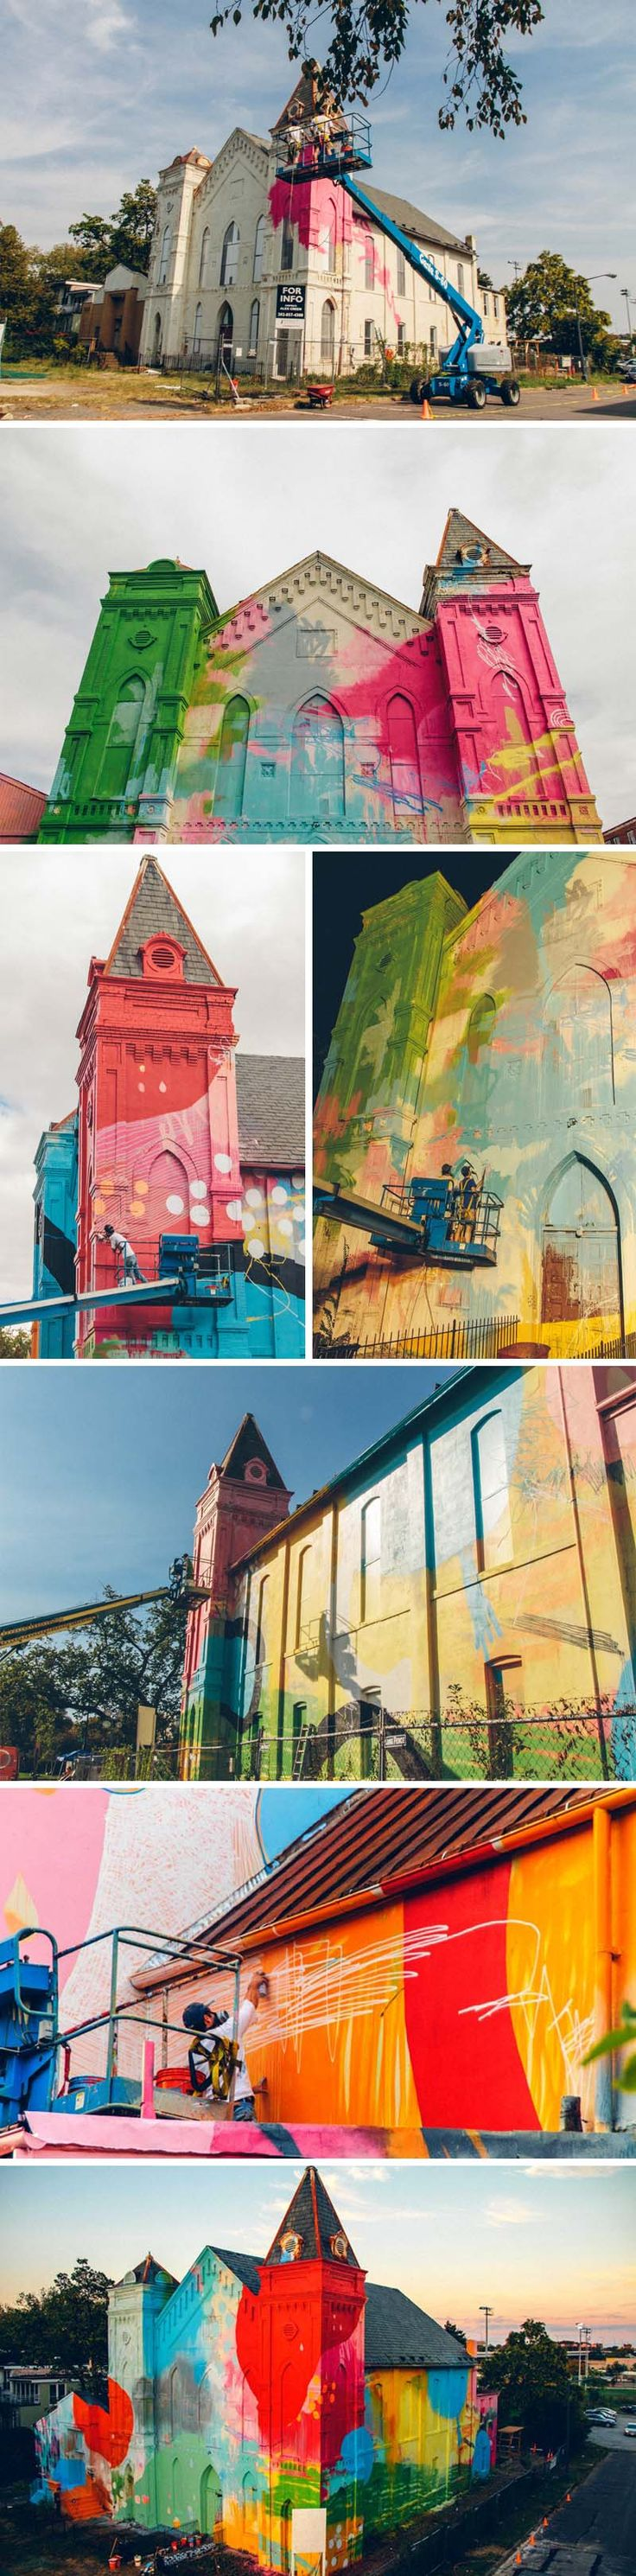 This abandoned church in Washington, DC was completely repainted by an artist in splendor color.